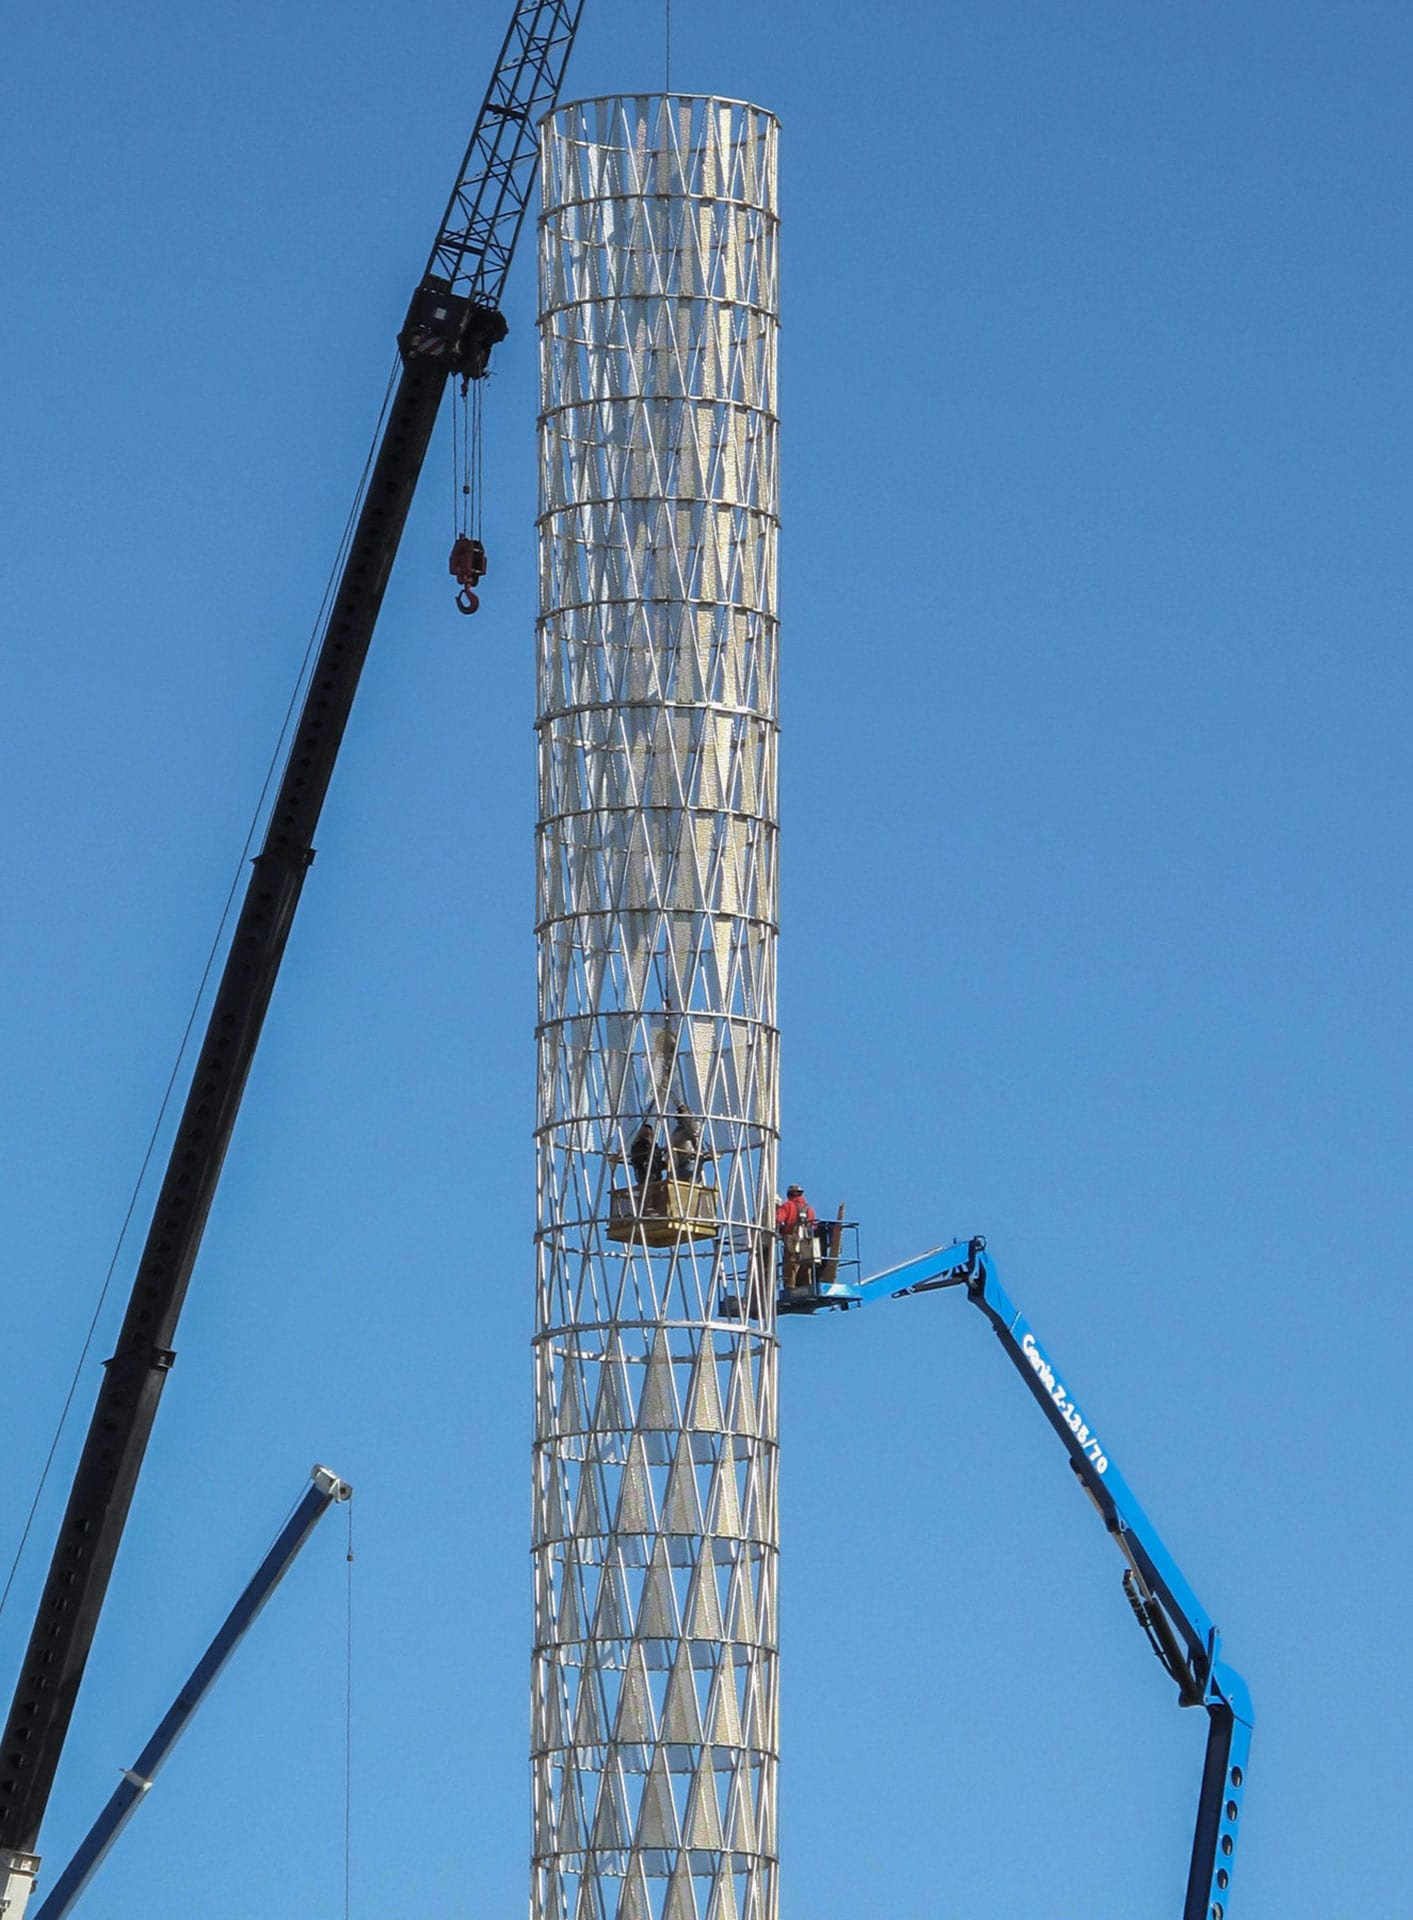 Installers place the triangular curving panels at UNMC in Nebraska.